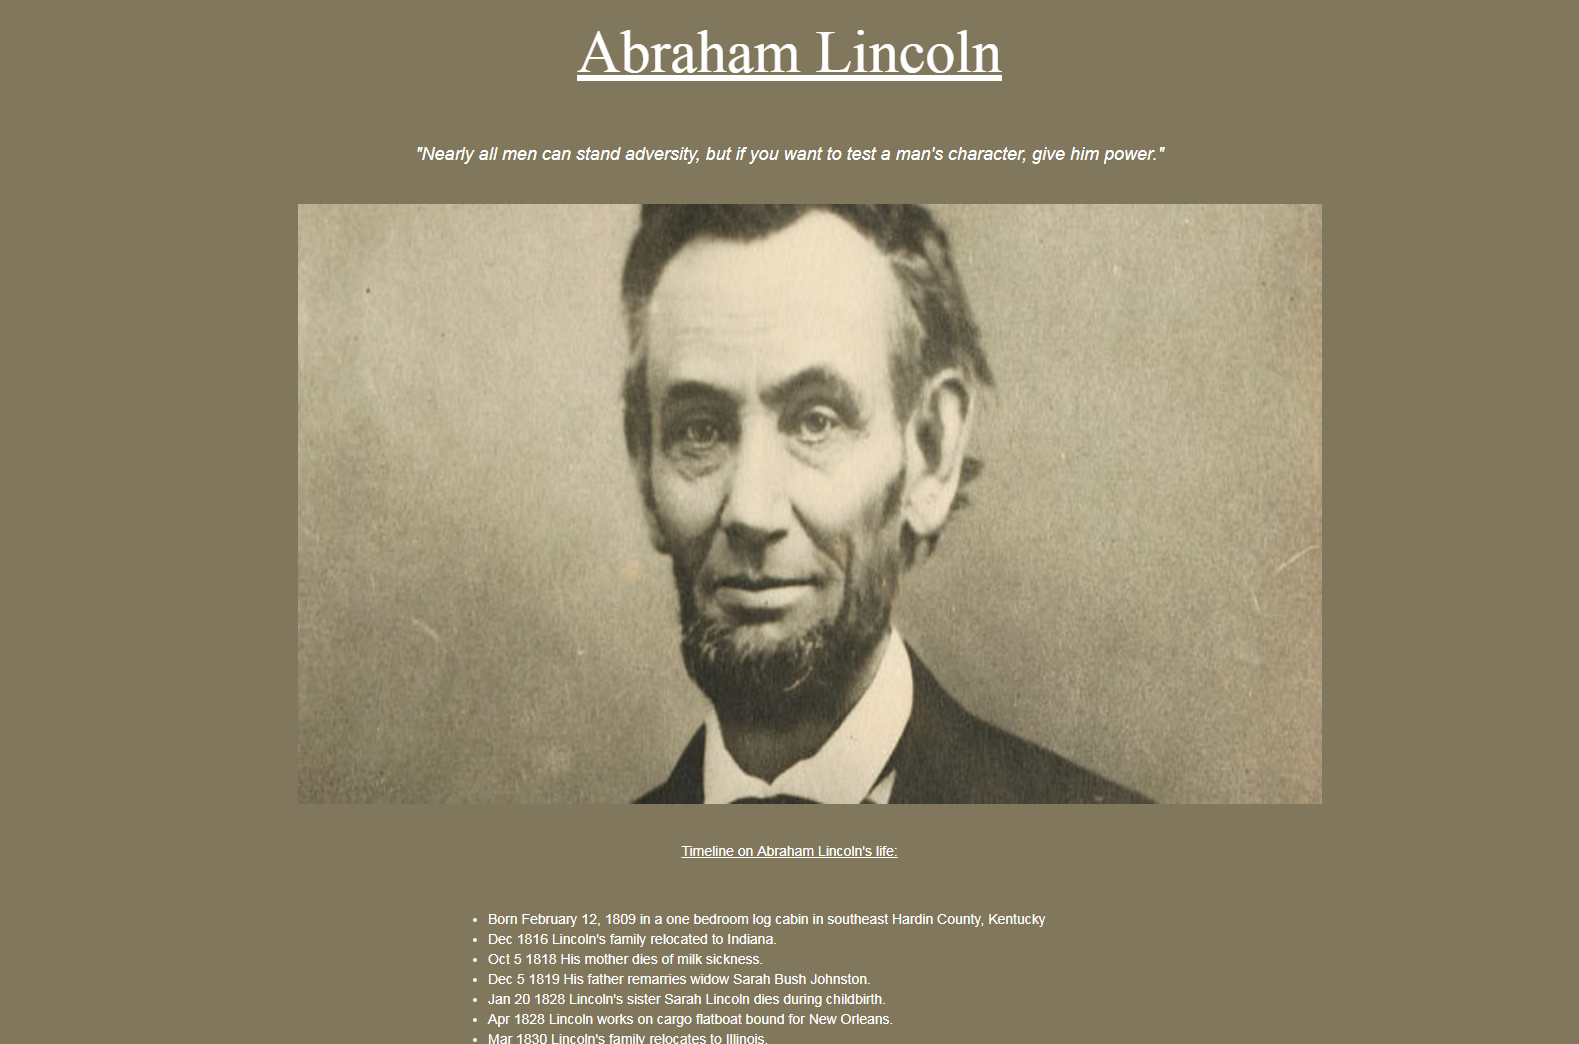 Thumbnail of lincoln-codepen page.